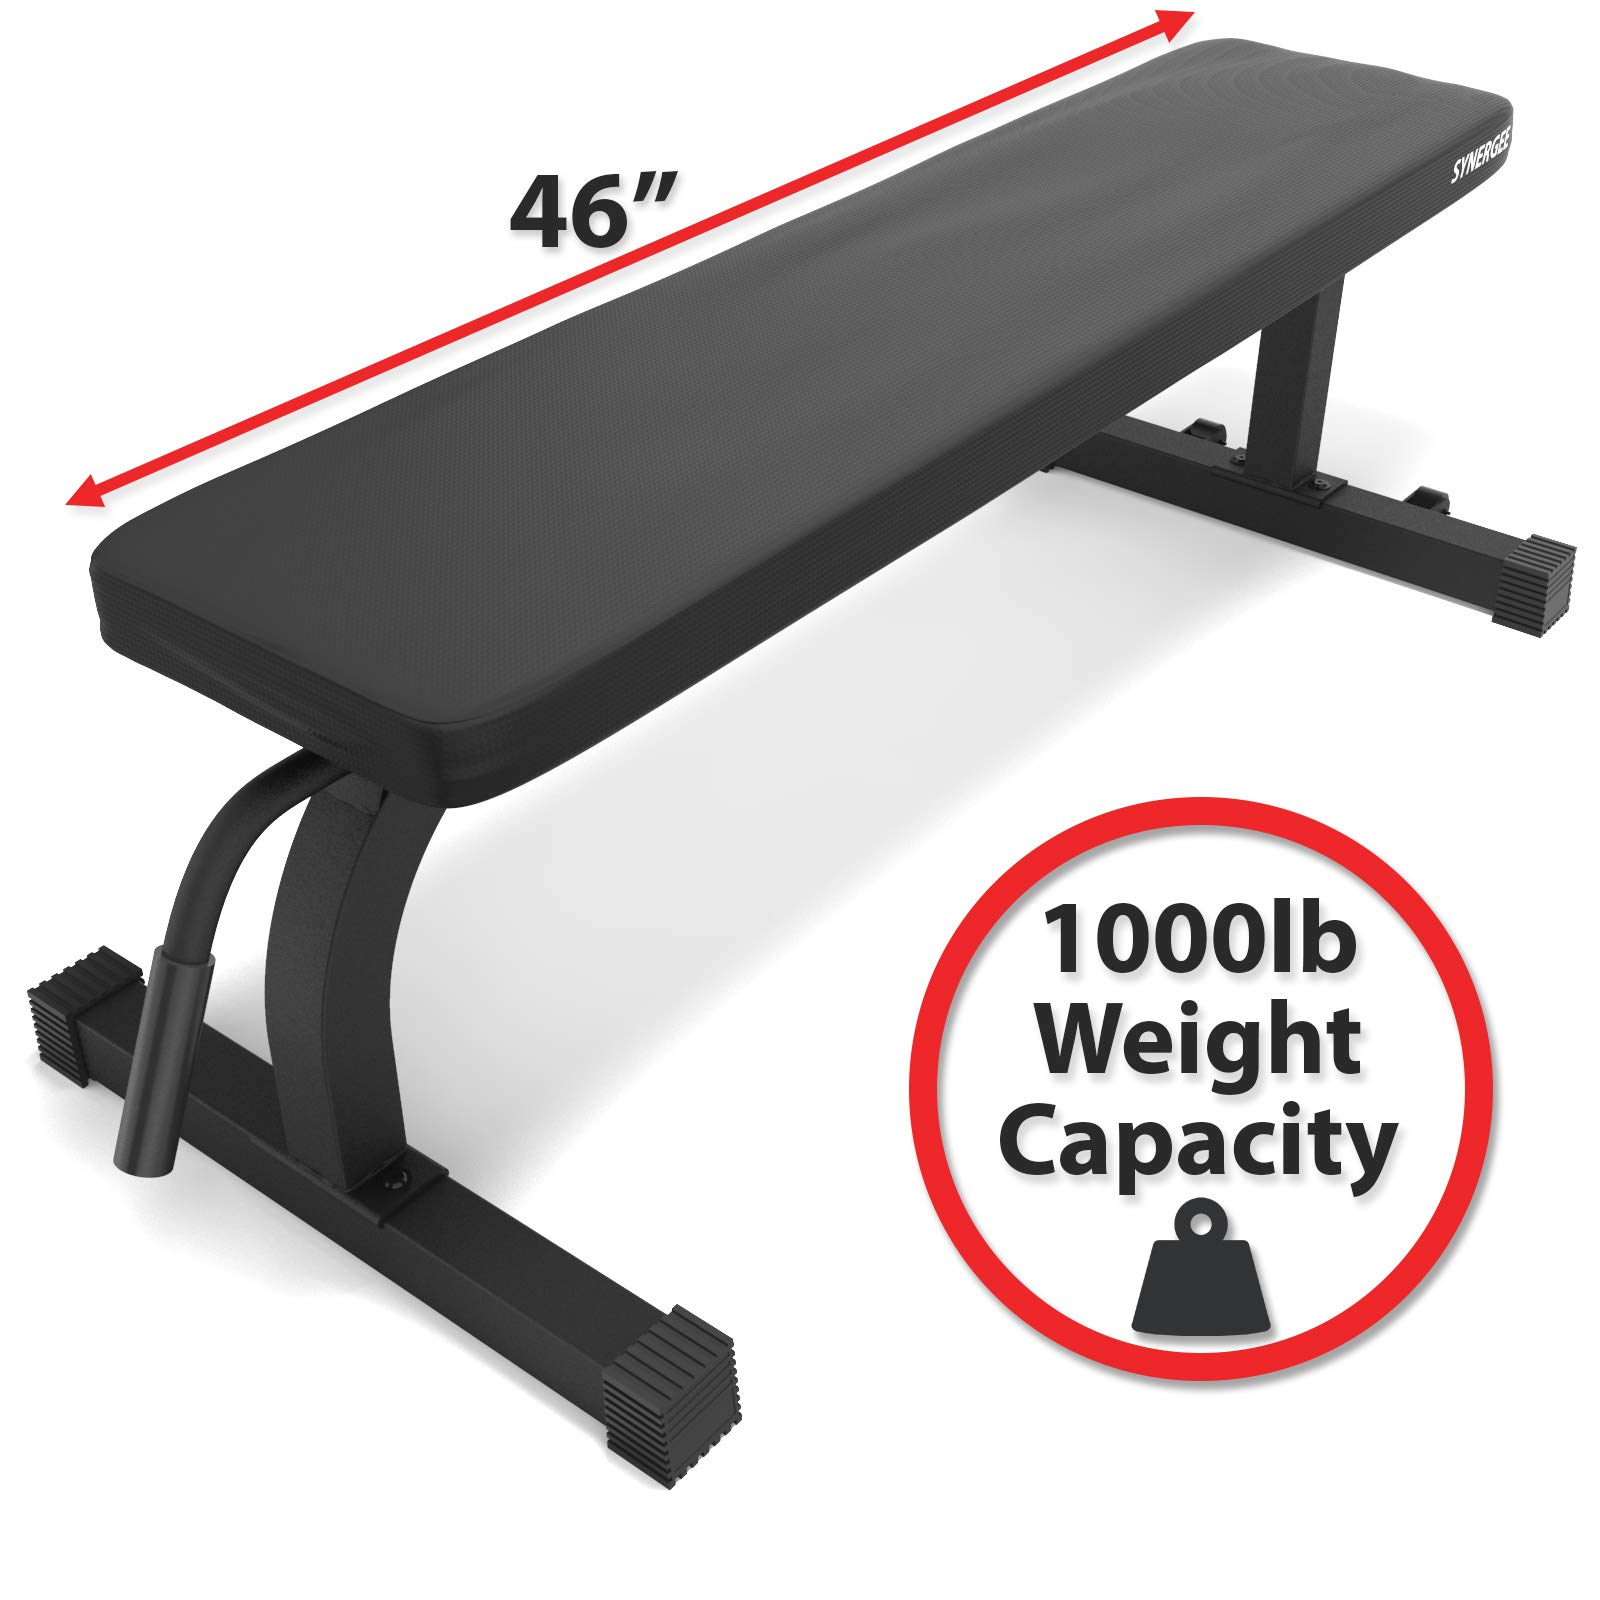 Synergee Flat Bench Workout Bench -Perfect for Pressing Exercises - Weight Bench for Dumbbell & Barbell Press Workouts - Great for Commercial, Garage and Home Gym